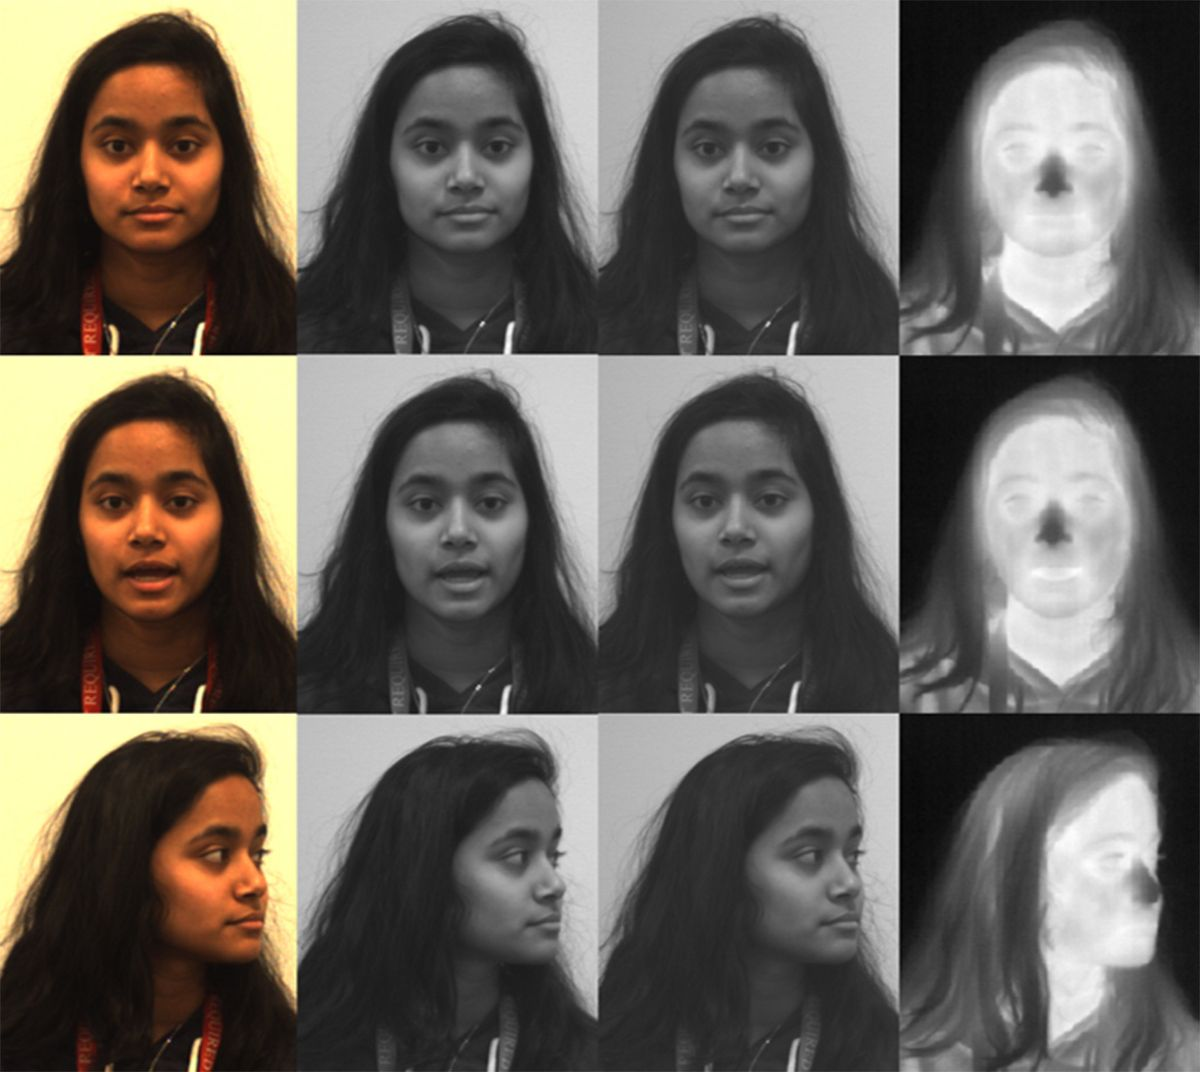 night vision facial recognition